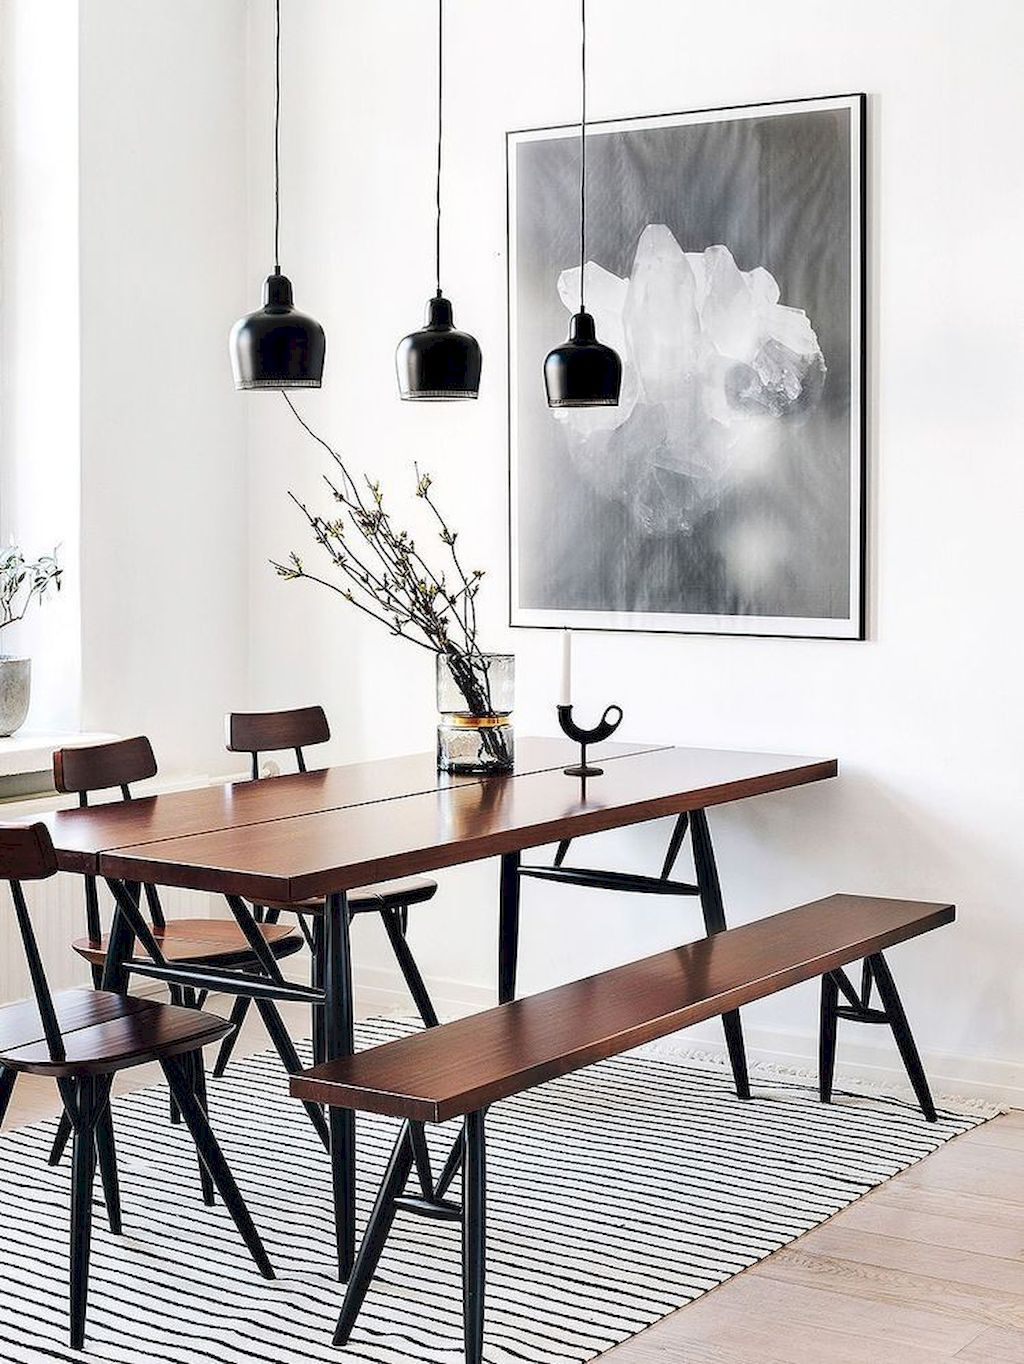 90 Scandinavian Interior Design Will Always Awesome Https Carrebianhome Com 90 S Minimalist Dining Room Decor Scandinavian Dining Room Minimalist Dining Room